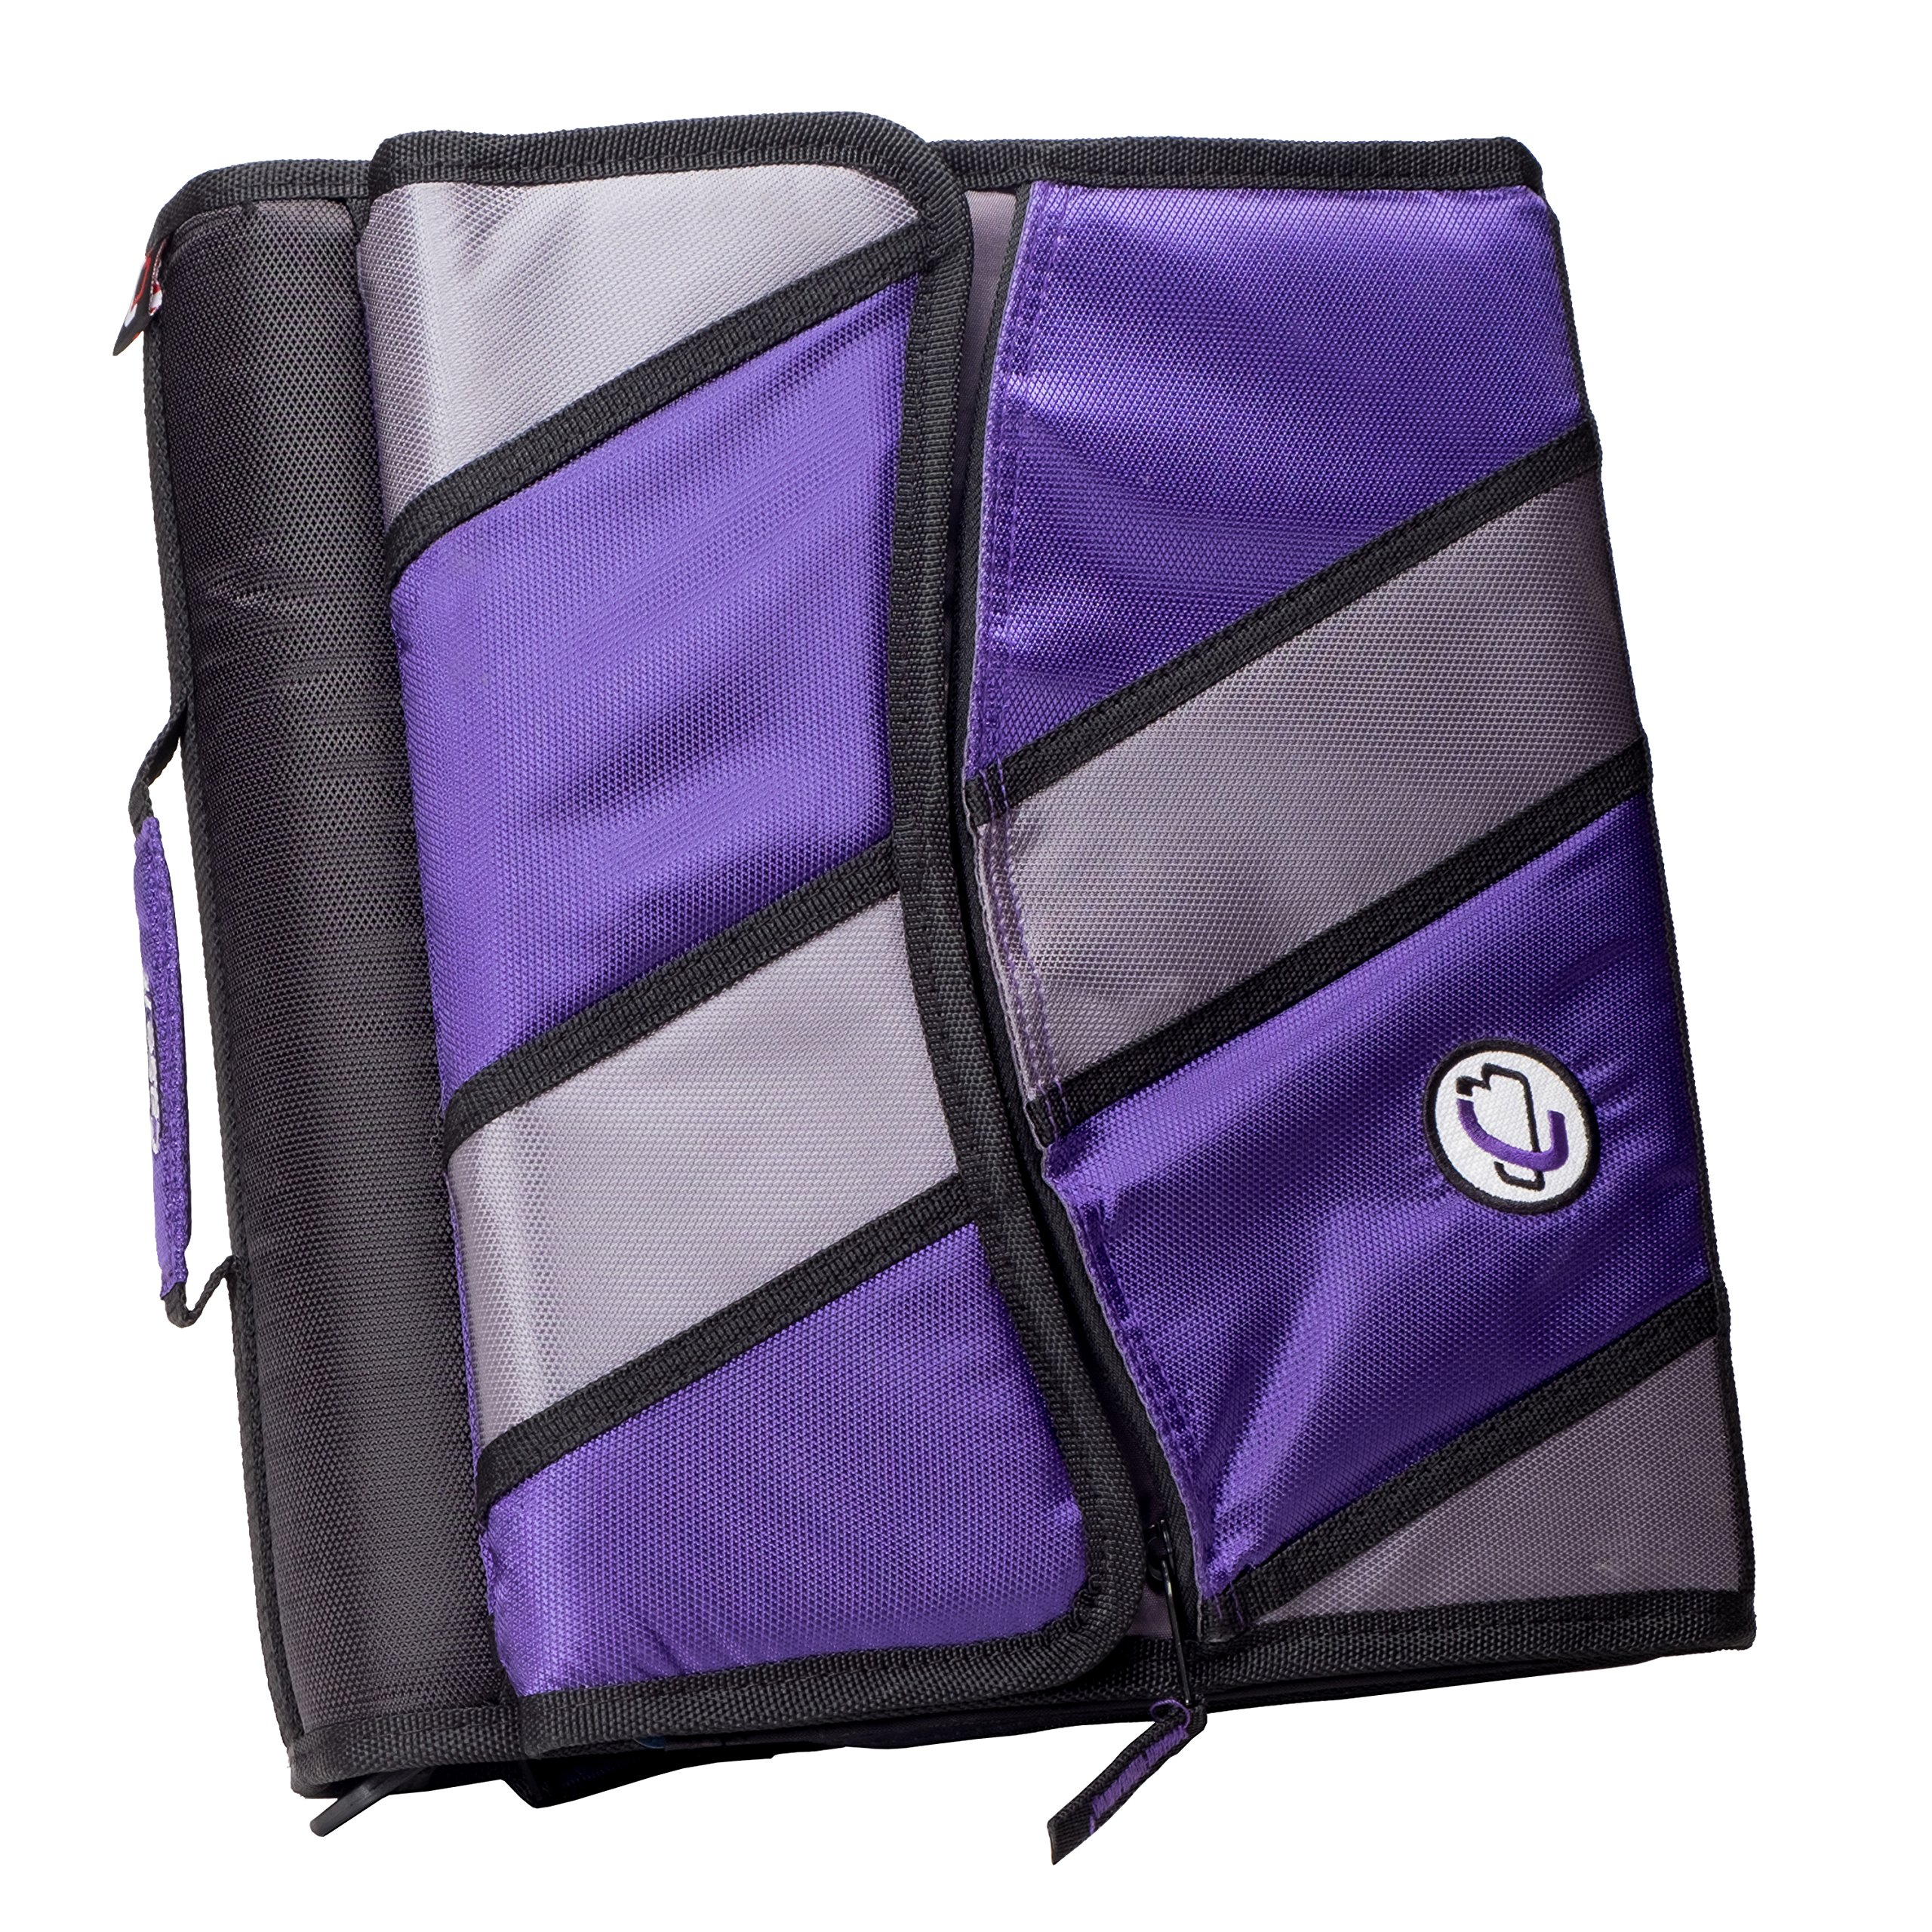 Case-it Sidekick 2-Inch O-Ring Zipper Binder with Removable Tab File, Purple, D-901-PUR